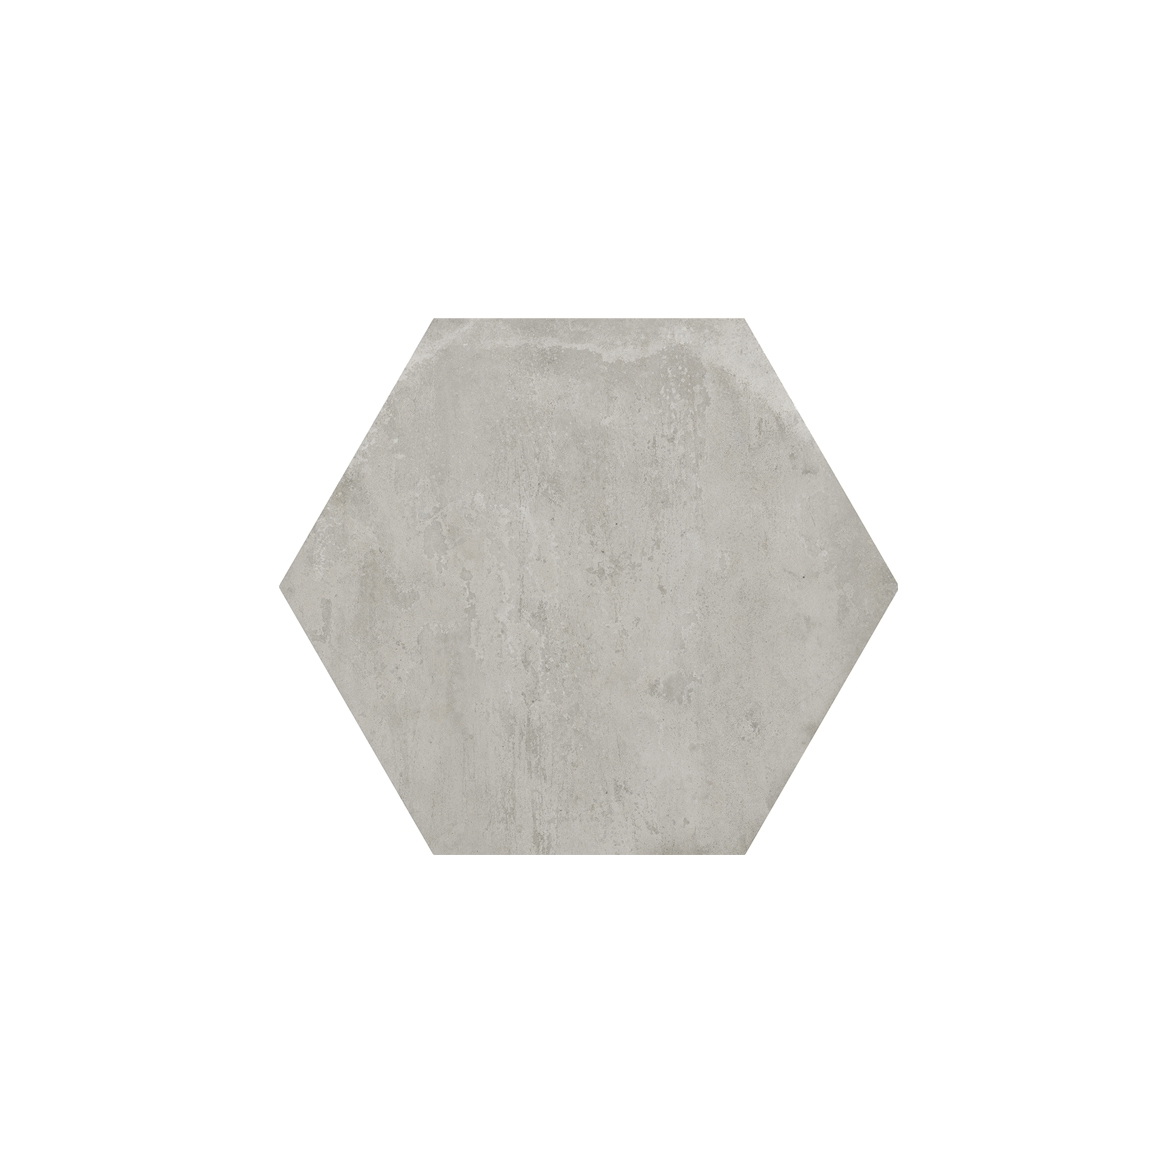 https://cerdesign.pl/1913-large_default/p3365-equipe-urban-hexagon-silver-292x254-23514.jpg